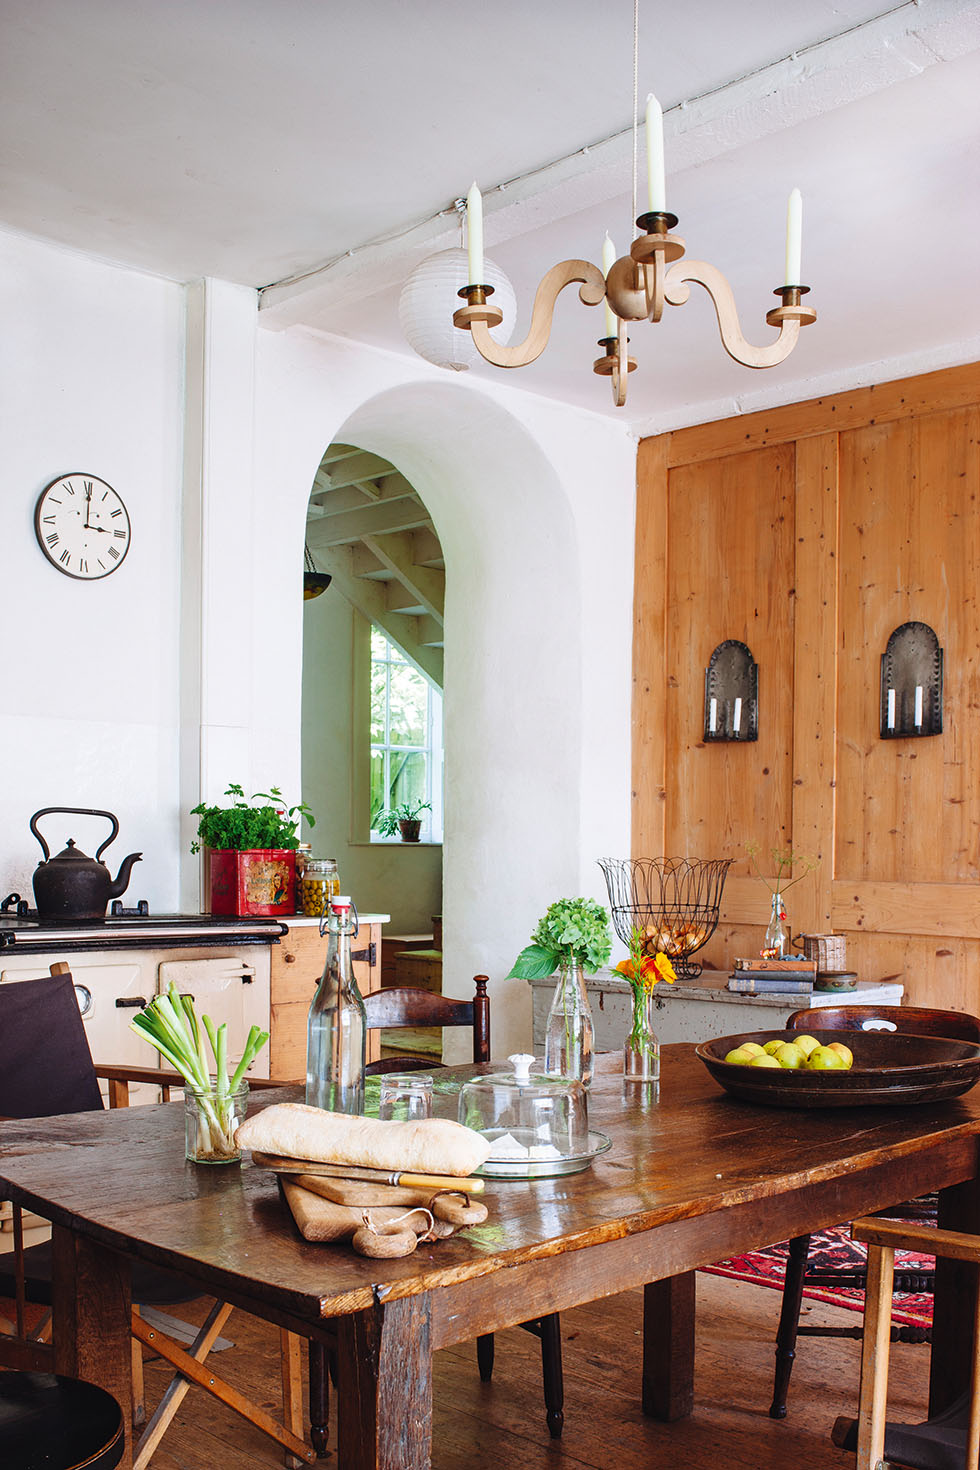 Dining area in Irish stone farmhouse